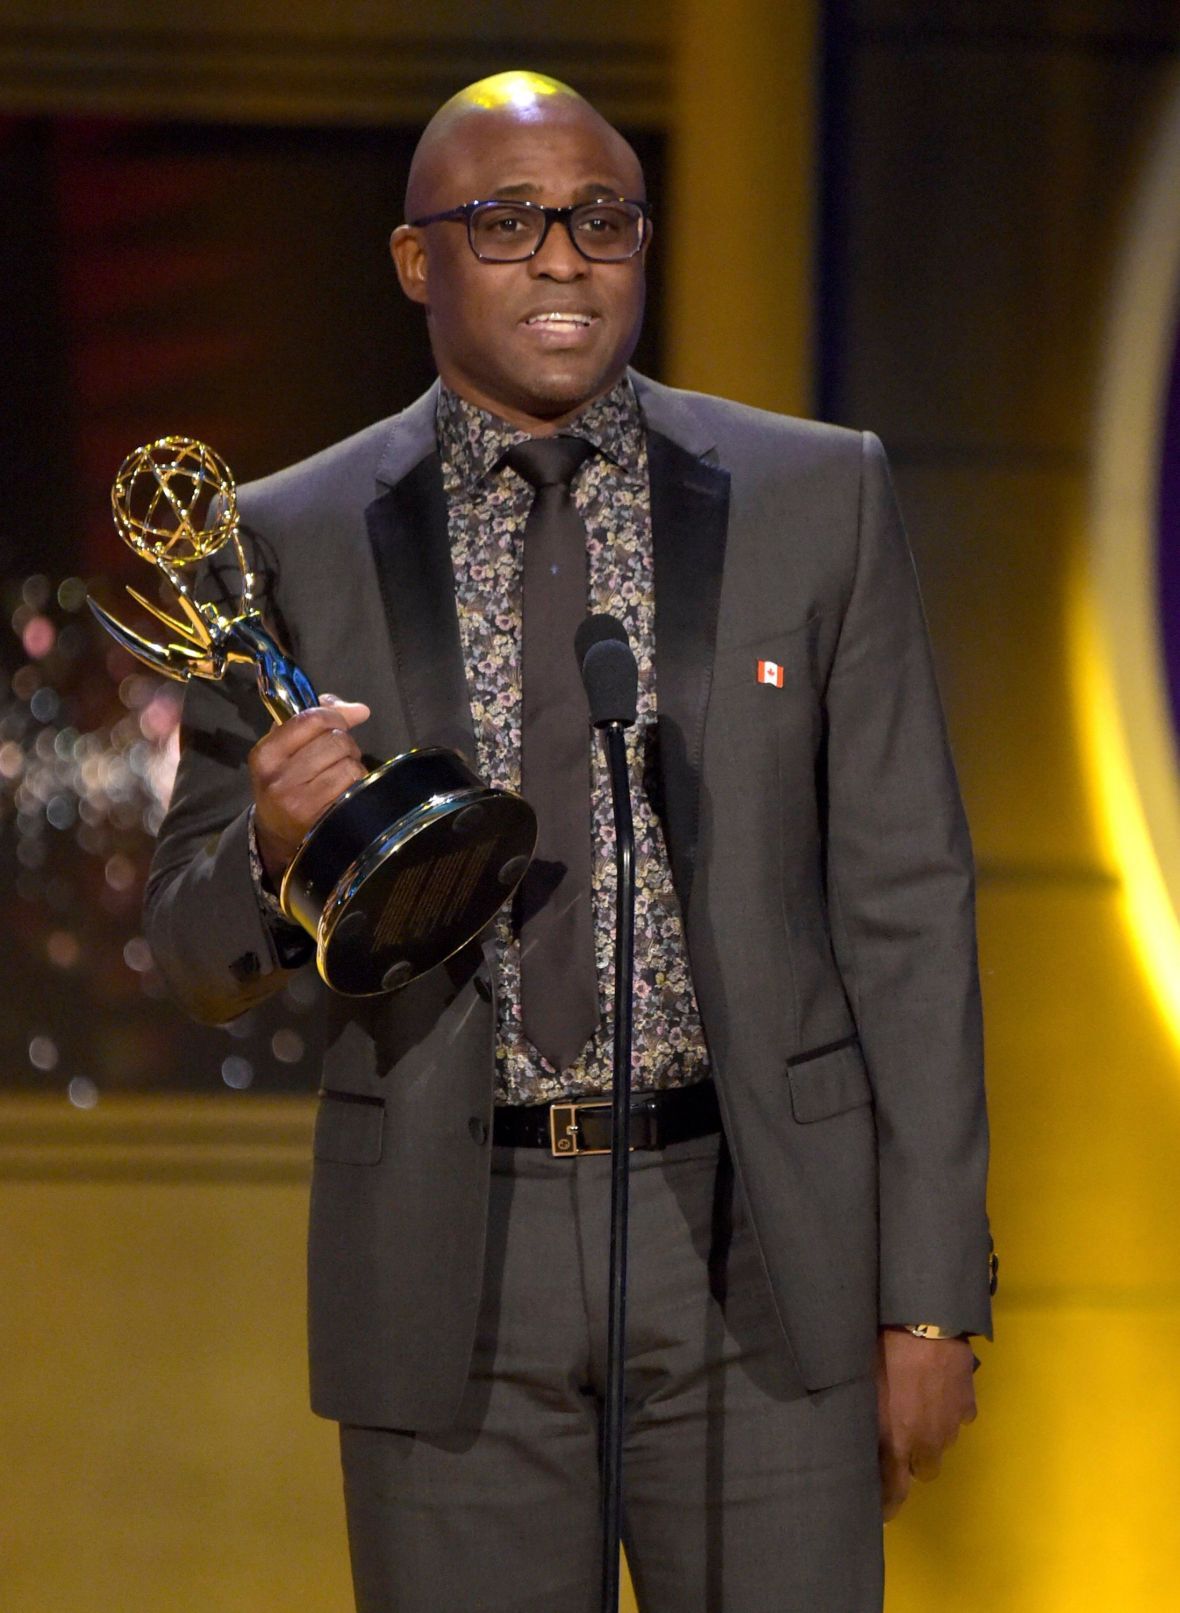 Wayne Brady Winning a Daytime Emmy Award for 'Let's Make a Deal!'